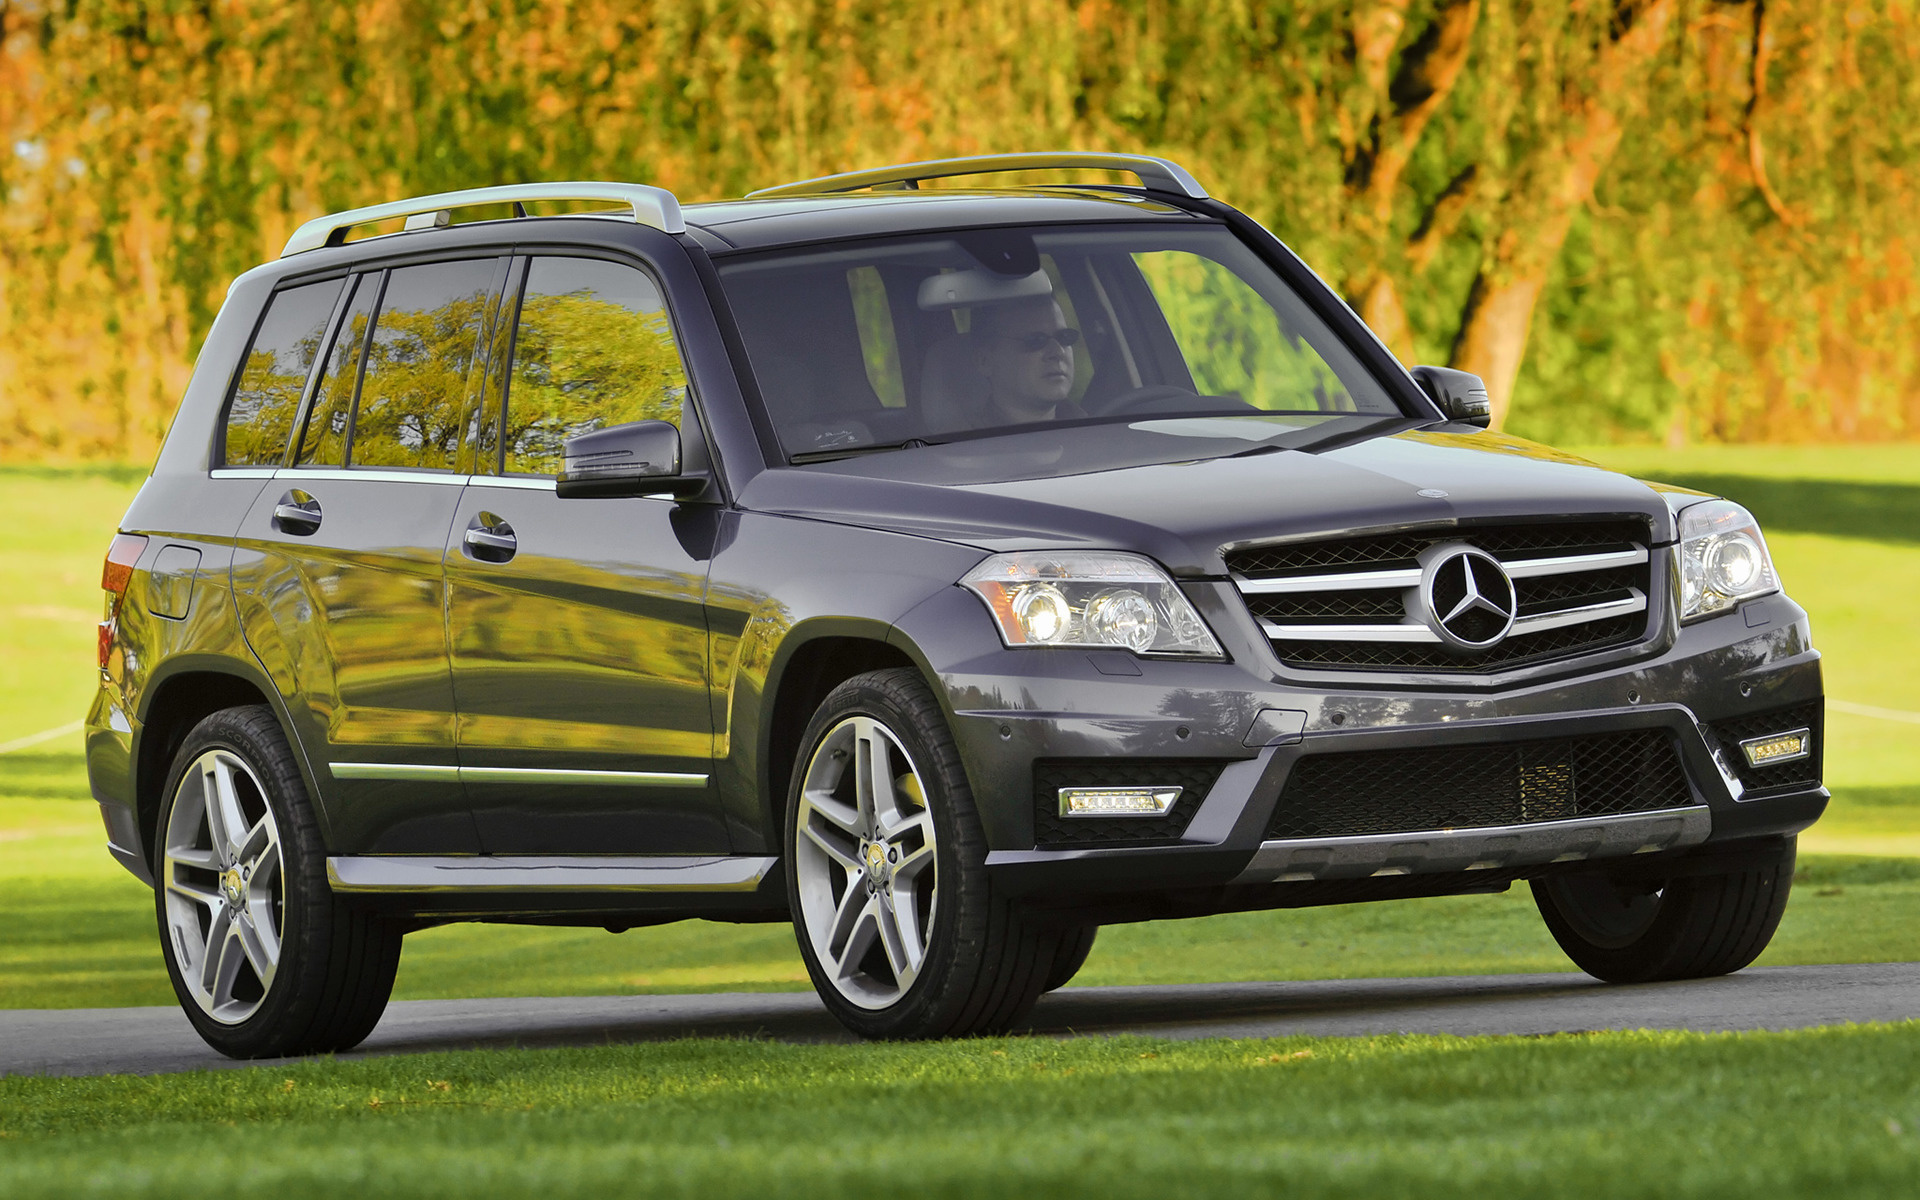 mercedes benz glk class amg styling 2010 us wallpapers and hd images car pixel. Black Bedroom Furniture Sets. Home Design Ideas